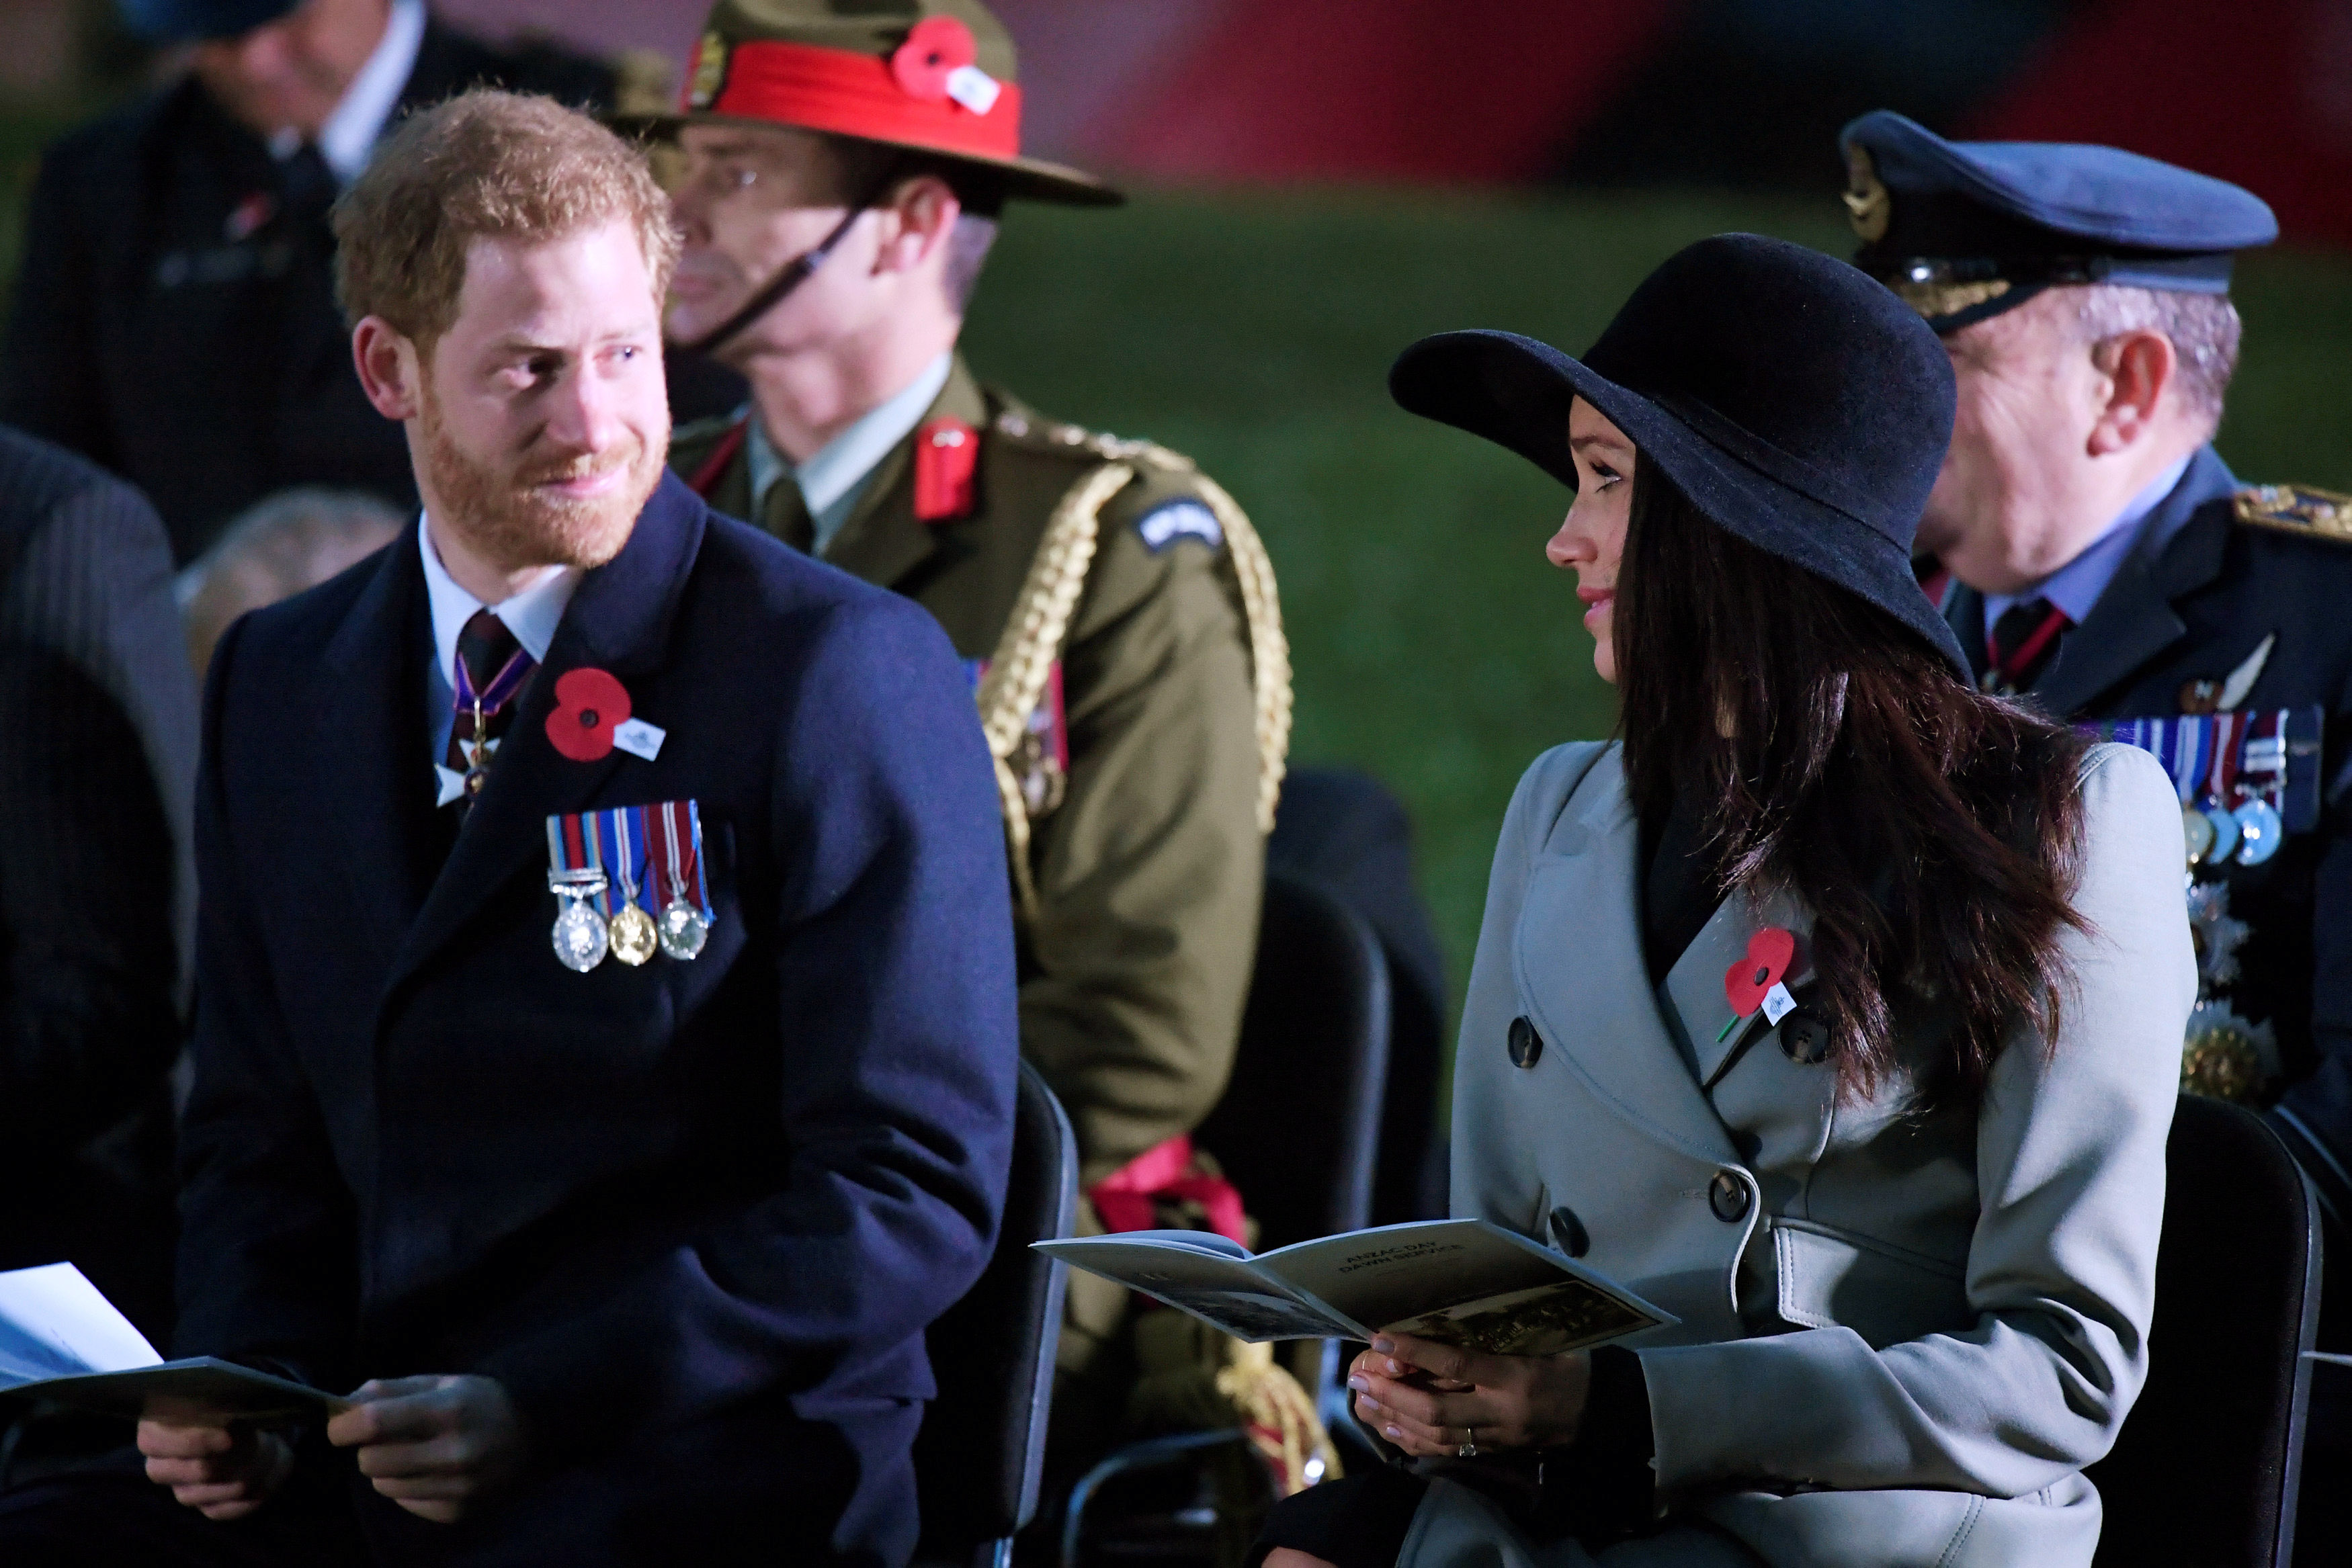 Prince Harry and Meghan Markle attend the Dawn Service at Wellington Arch to commemorate Anzac Day on April 25, 2018 in London, United Kingdom. (Photo by Toby Melville – WPA Pool/Getty Images)